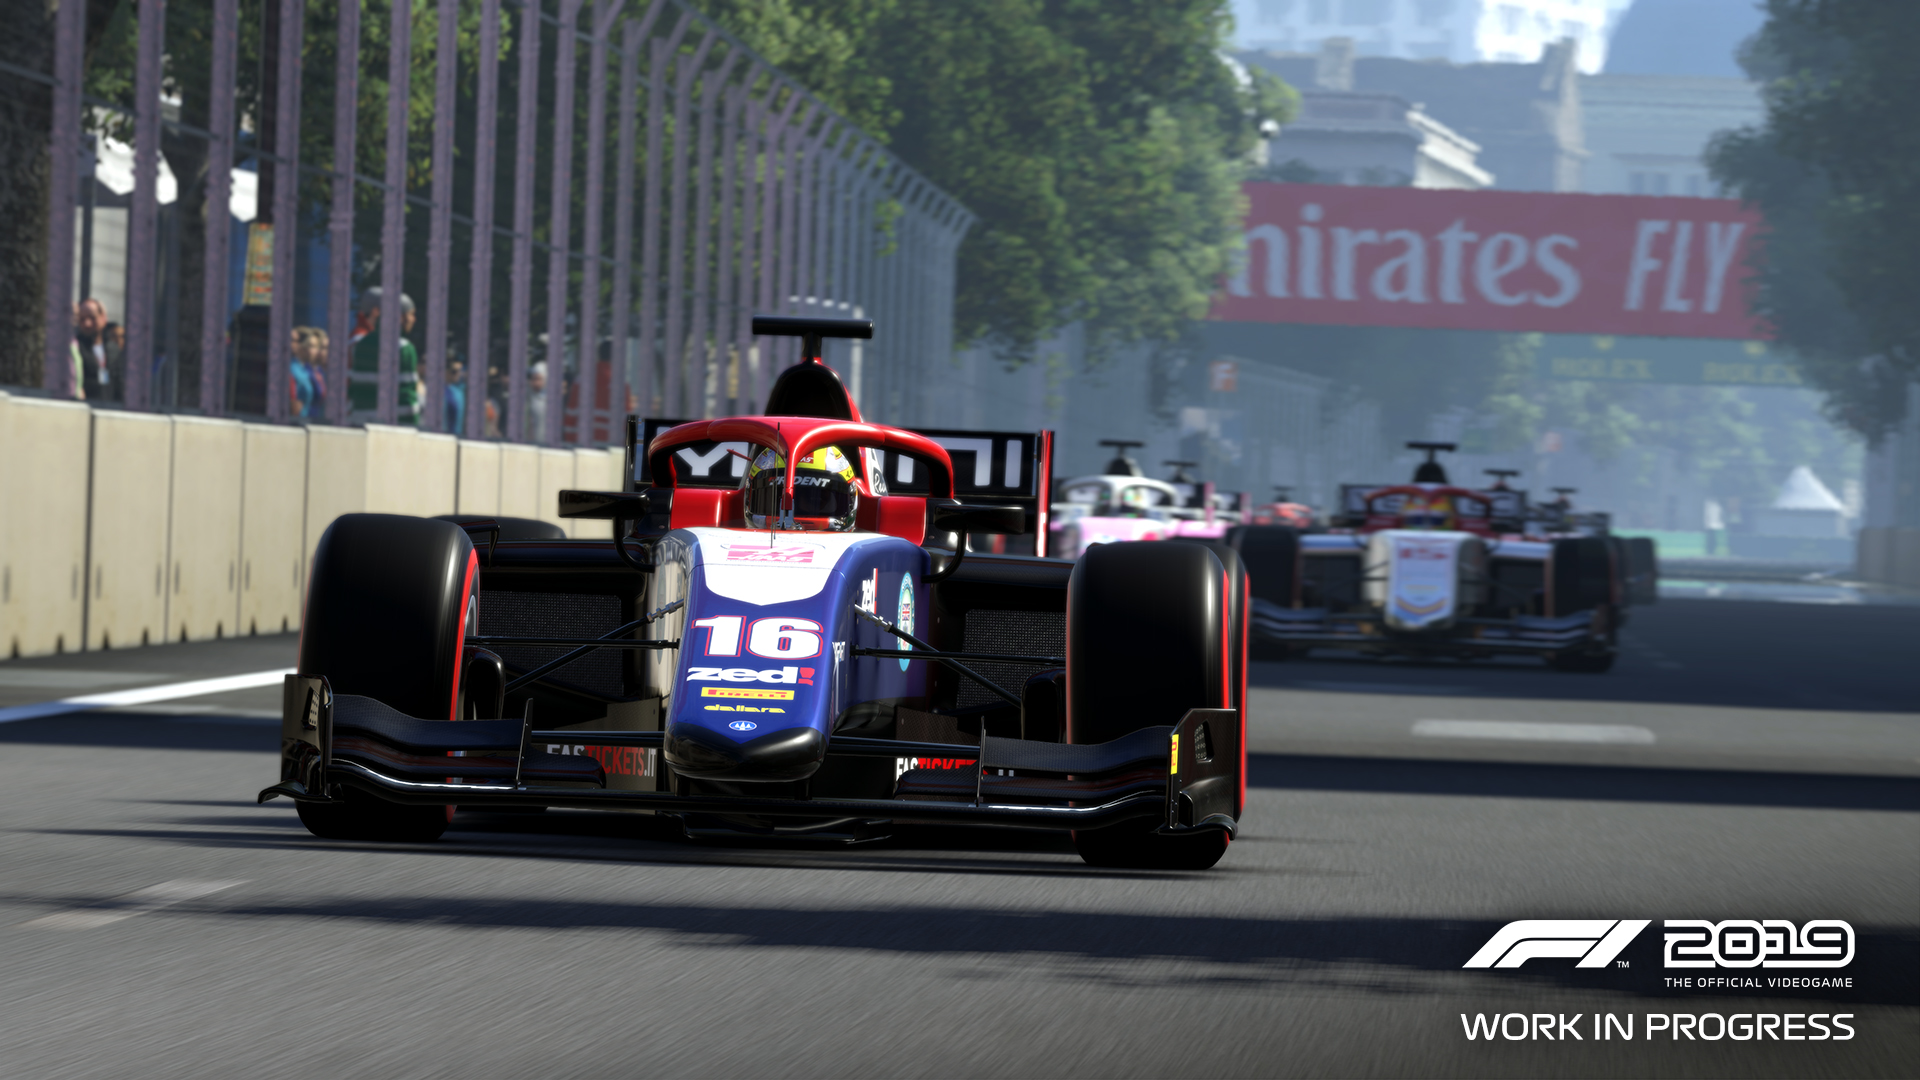 Spiele F1 Racing - Video Slots Online